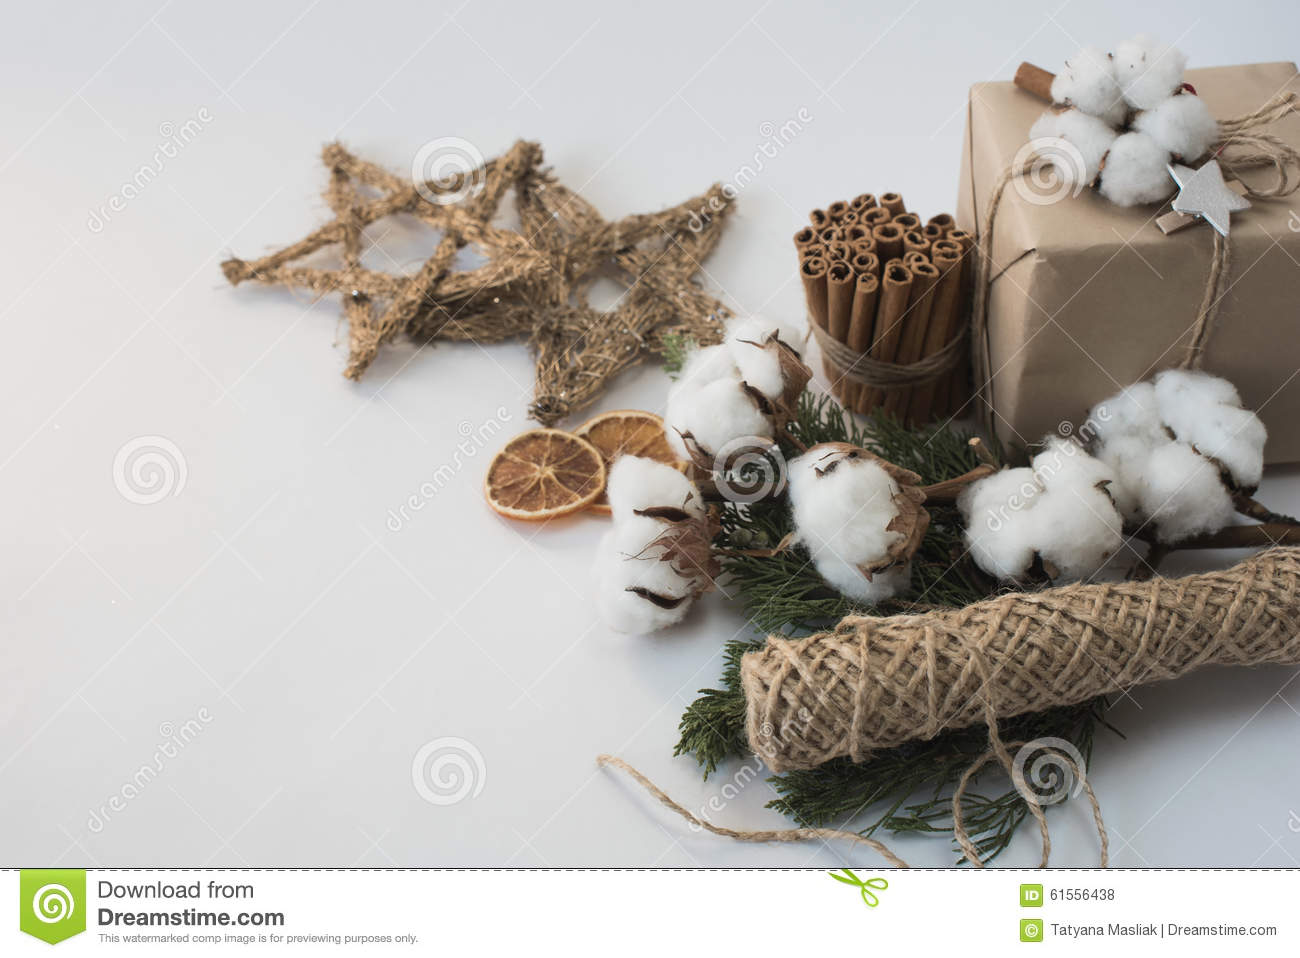 Christmas Decorations Eco Cotton Flowers Cinnamon Stars Spruce Branches And Jute Rope Hank Over White Background Holiday Xmas Ch Stock Photo Image Of Abstract Branch 61556438